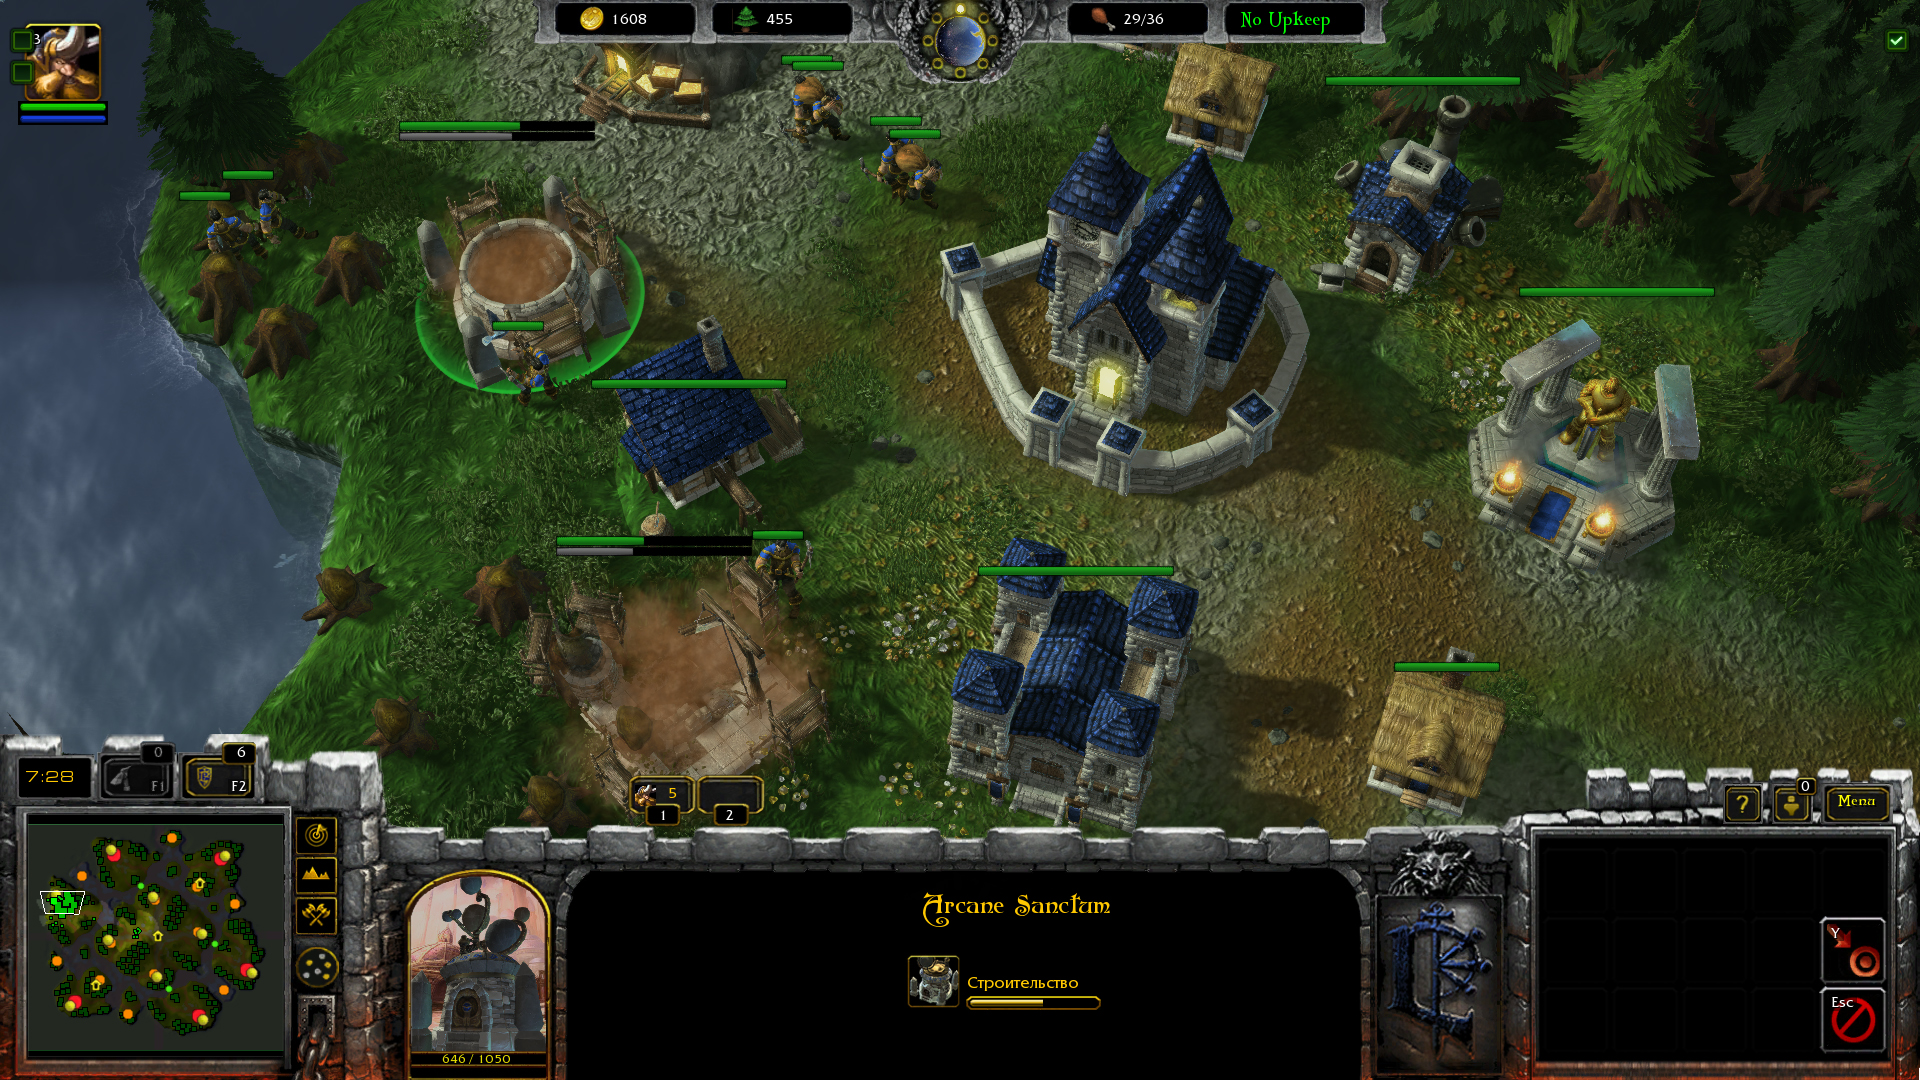 Armies of Azeroth – Warcraft 4 Strategy Game Based On Star Craft 2